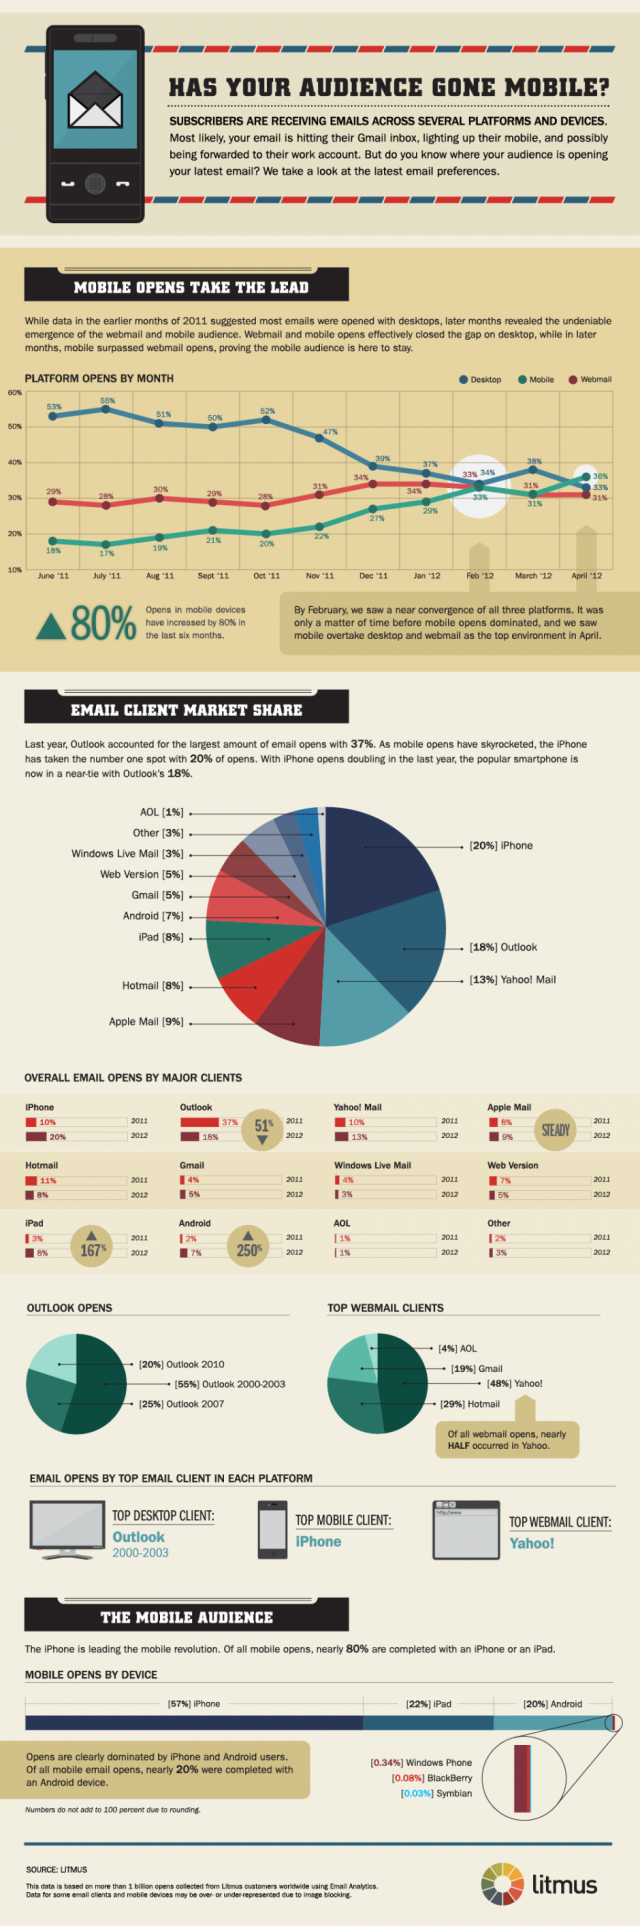 email client market share june 2012 940x2830